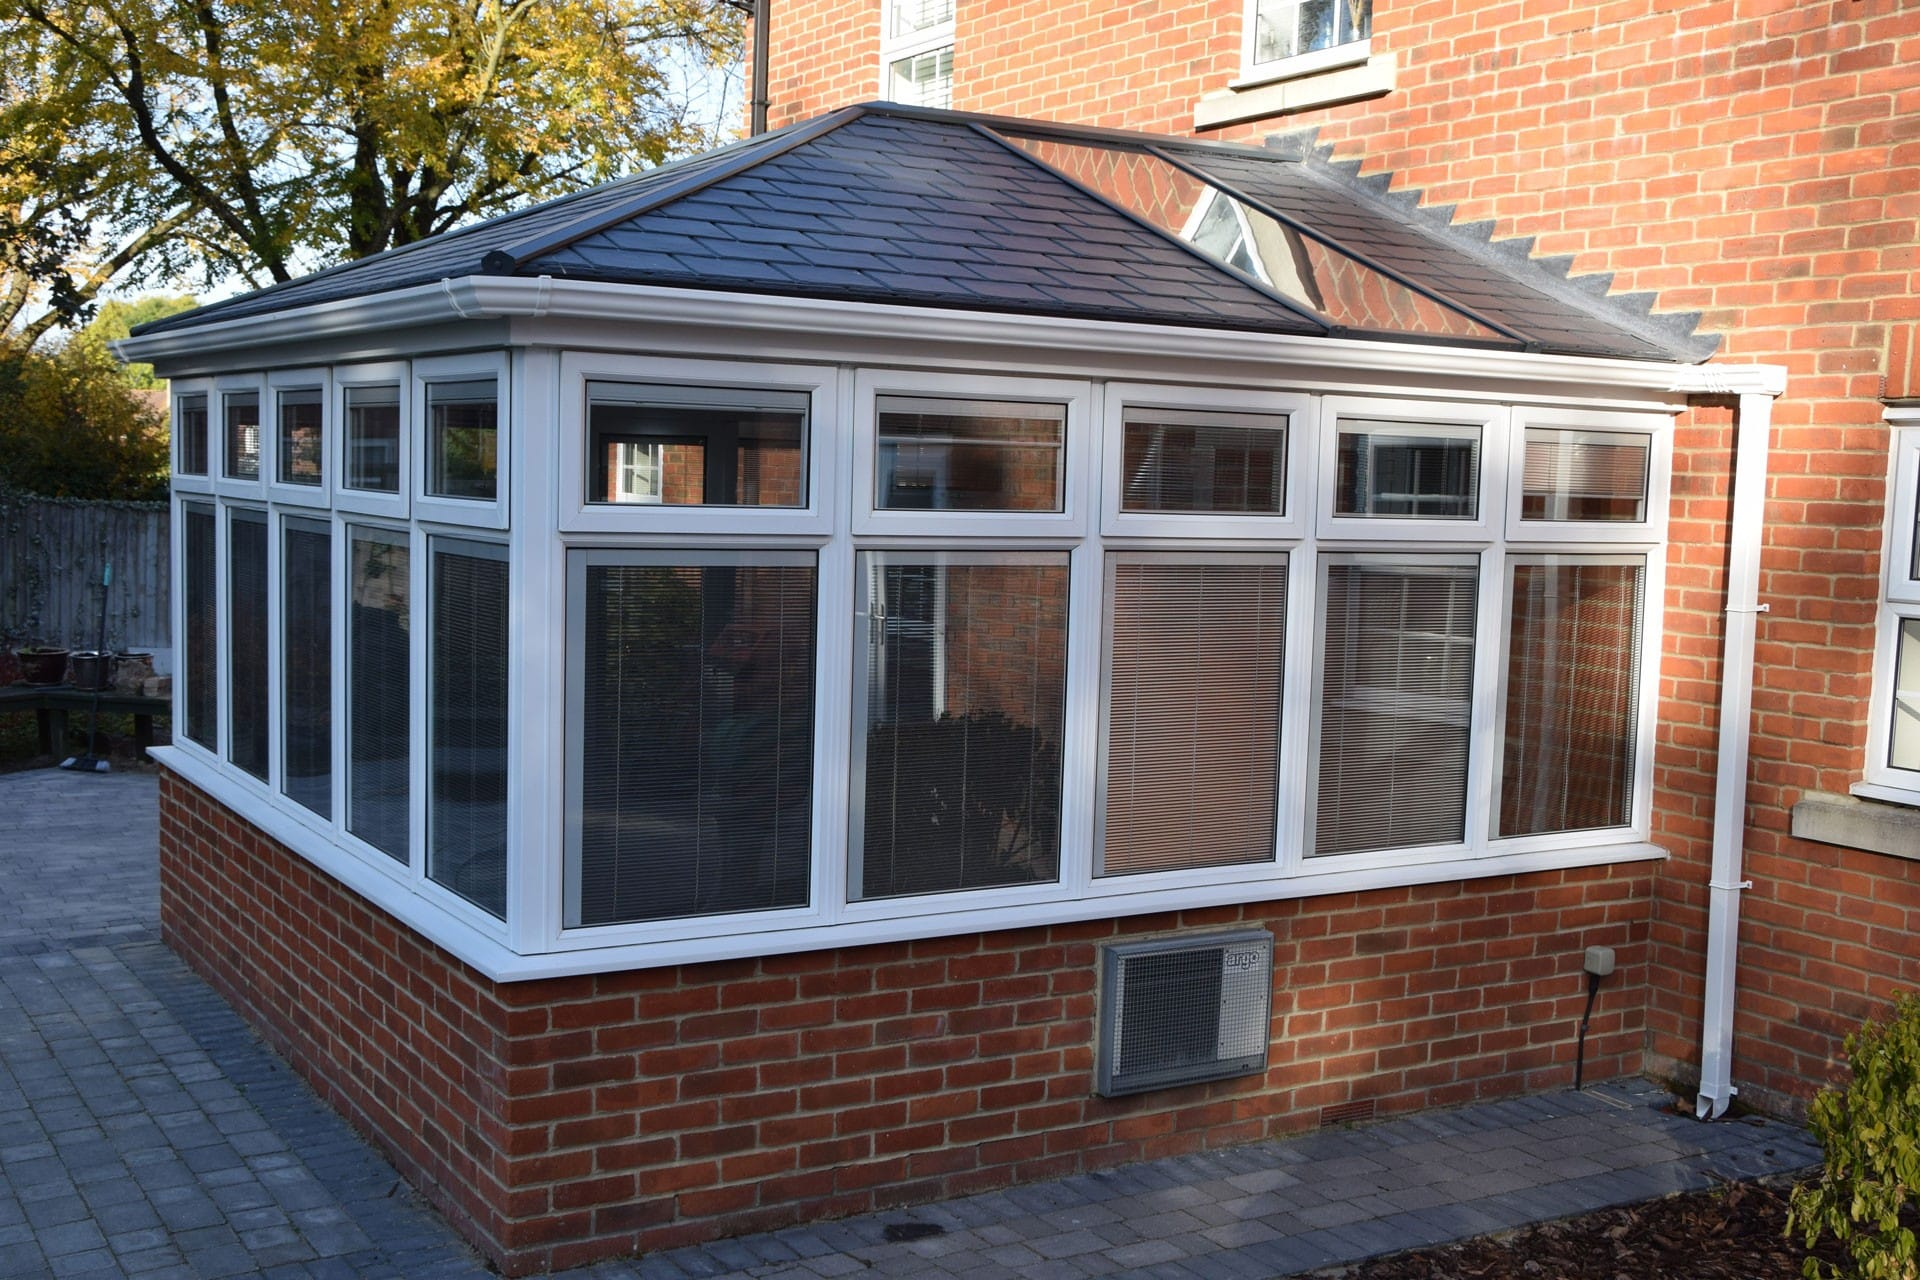 Ultraroof solid tiled conservatory roof